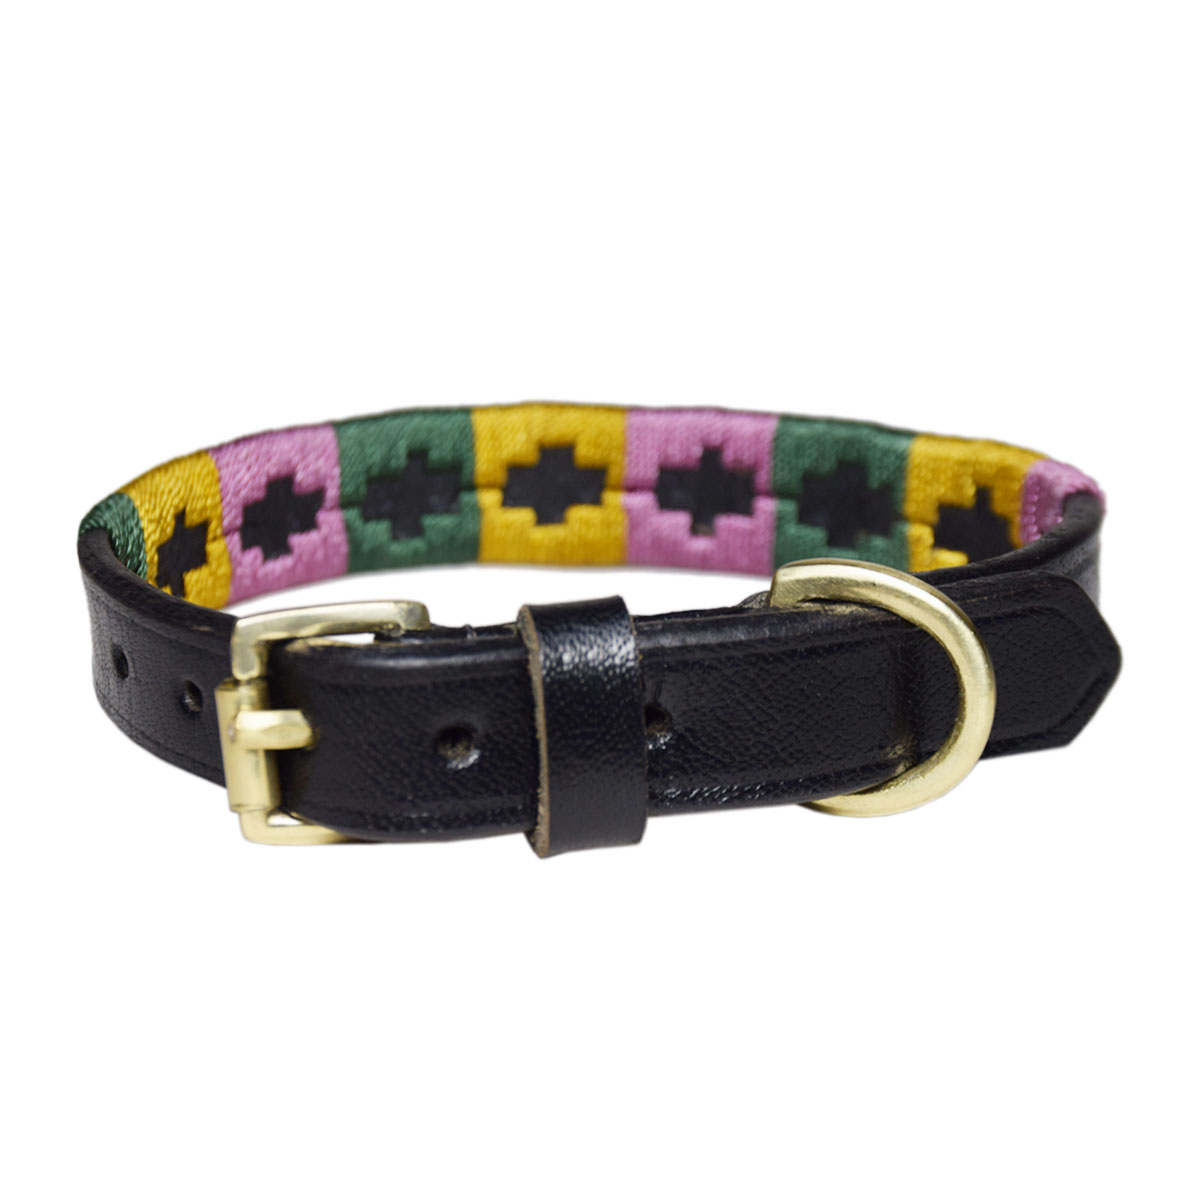 BLACK PET POLO COLLAR BELT FOR PETS 6MM